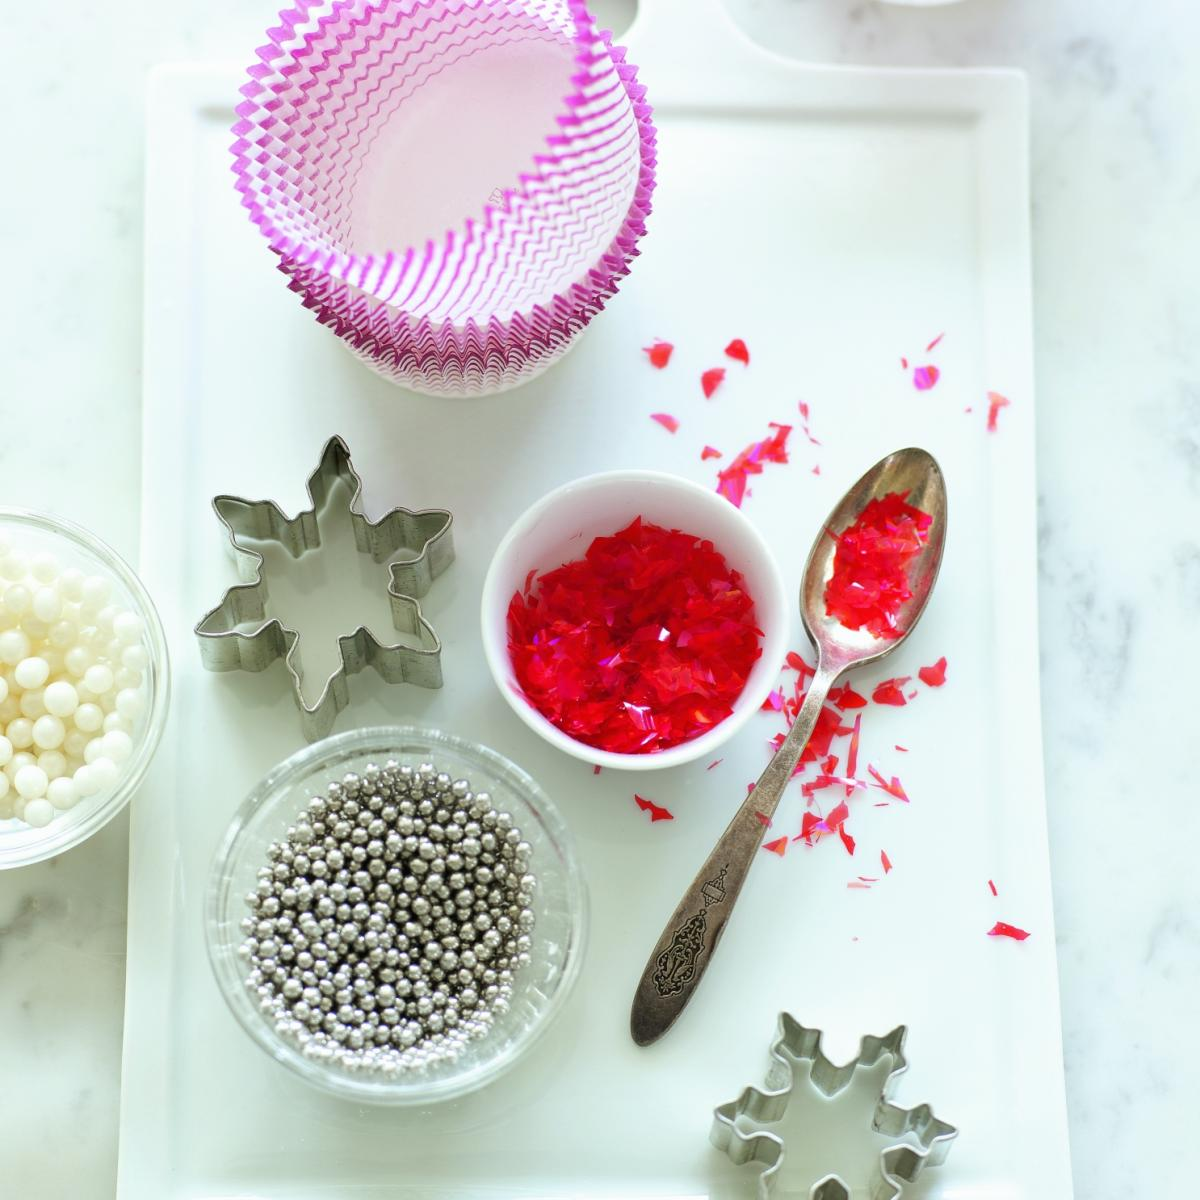 Christmas Cake Decoration Delia Smith : Christmas: Cakes, Icings and Toppings Recipes Delia Online